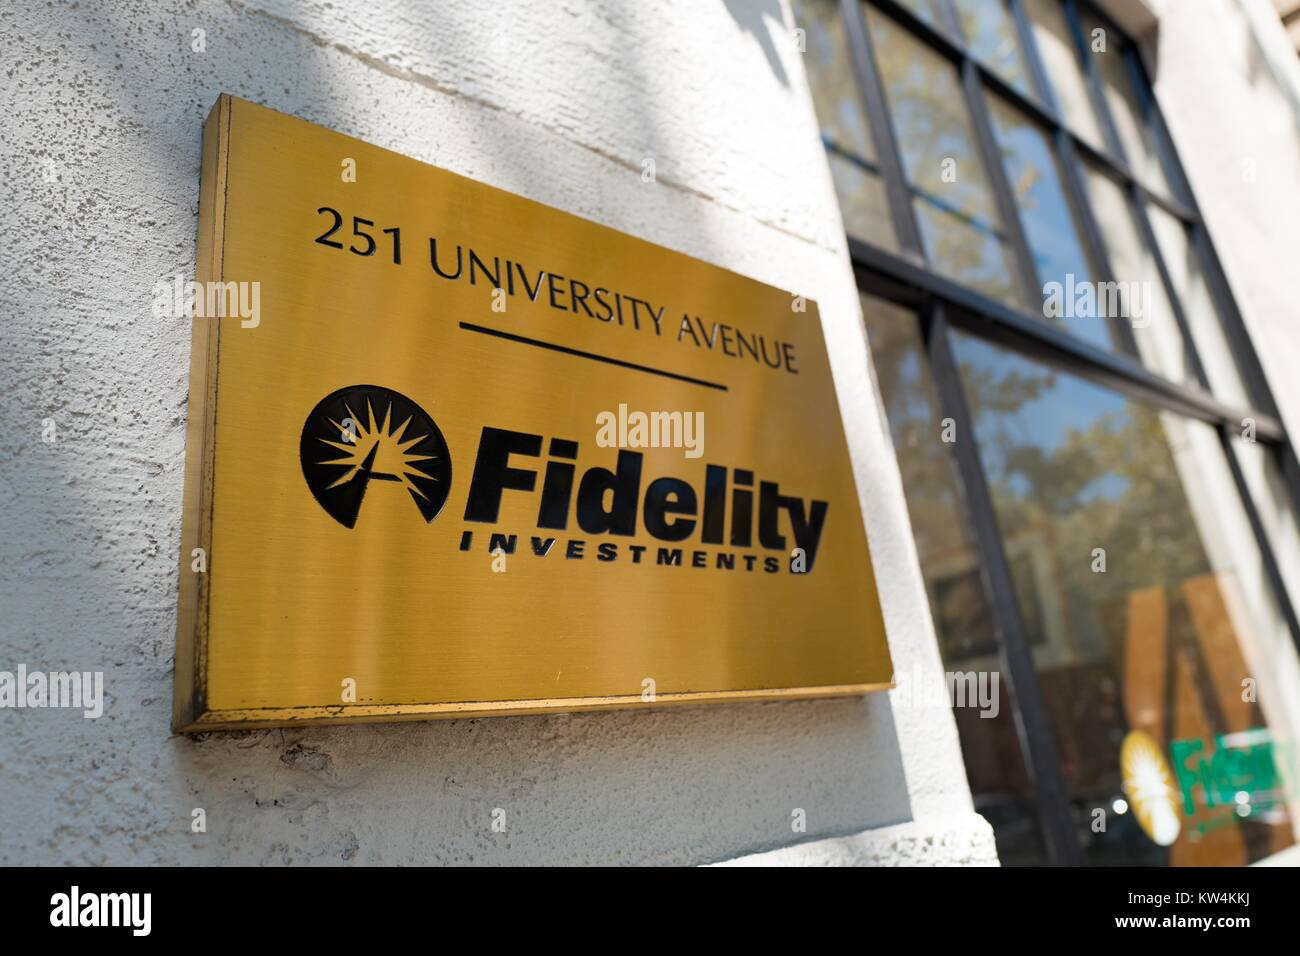 Signage with logo for Fidelity Investments, on University Avenue in the Silicon Valley town of Palo Alto, California, - Stock Image